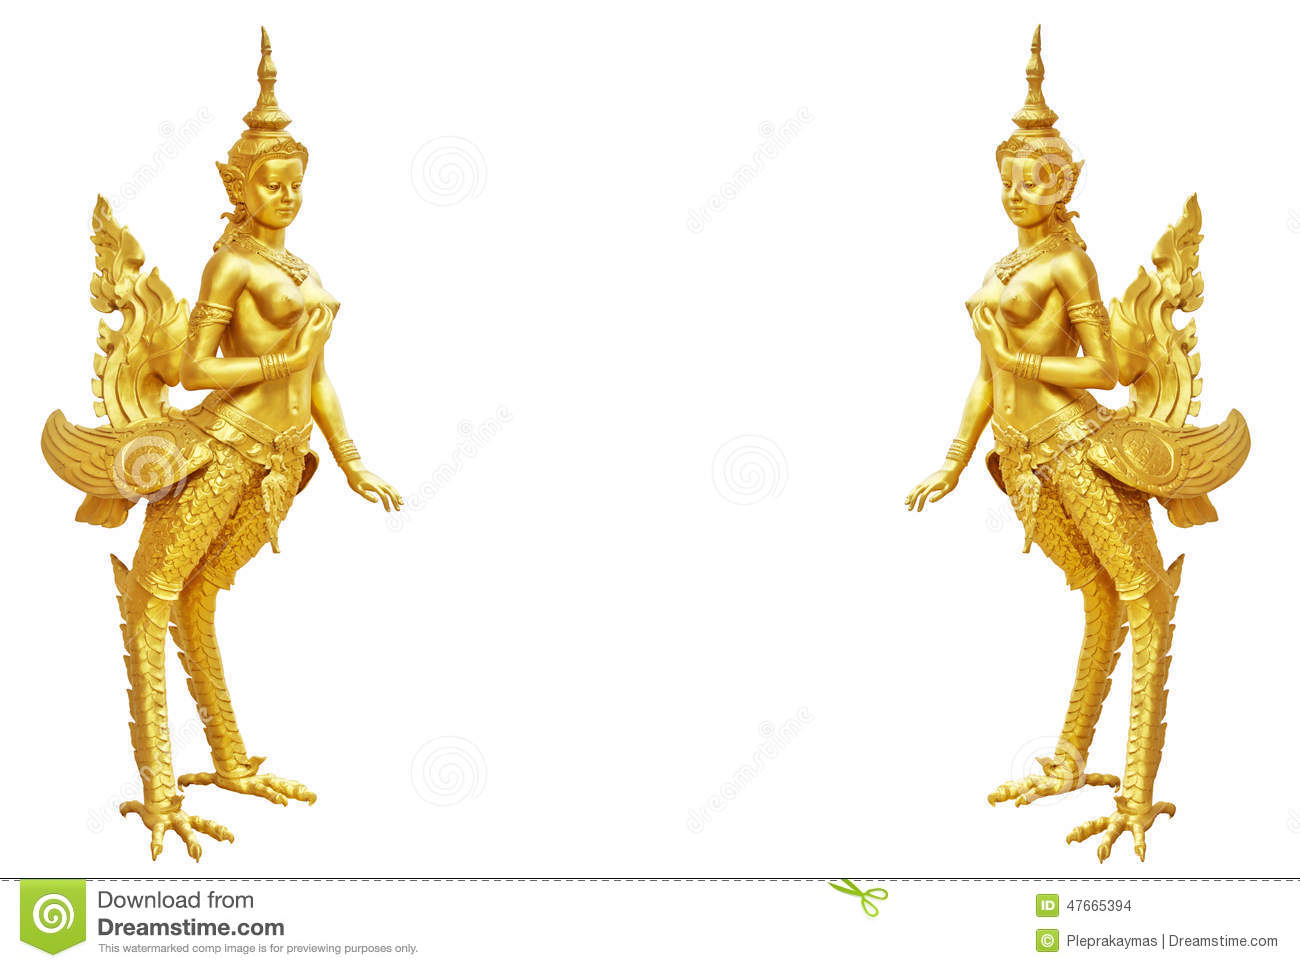 Thai art Kinnaree statue : The mythical half bird half woman